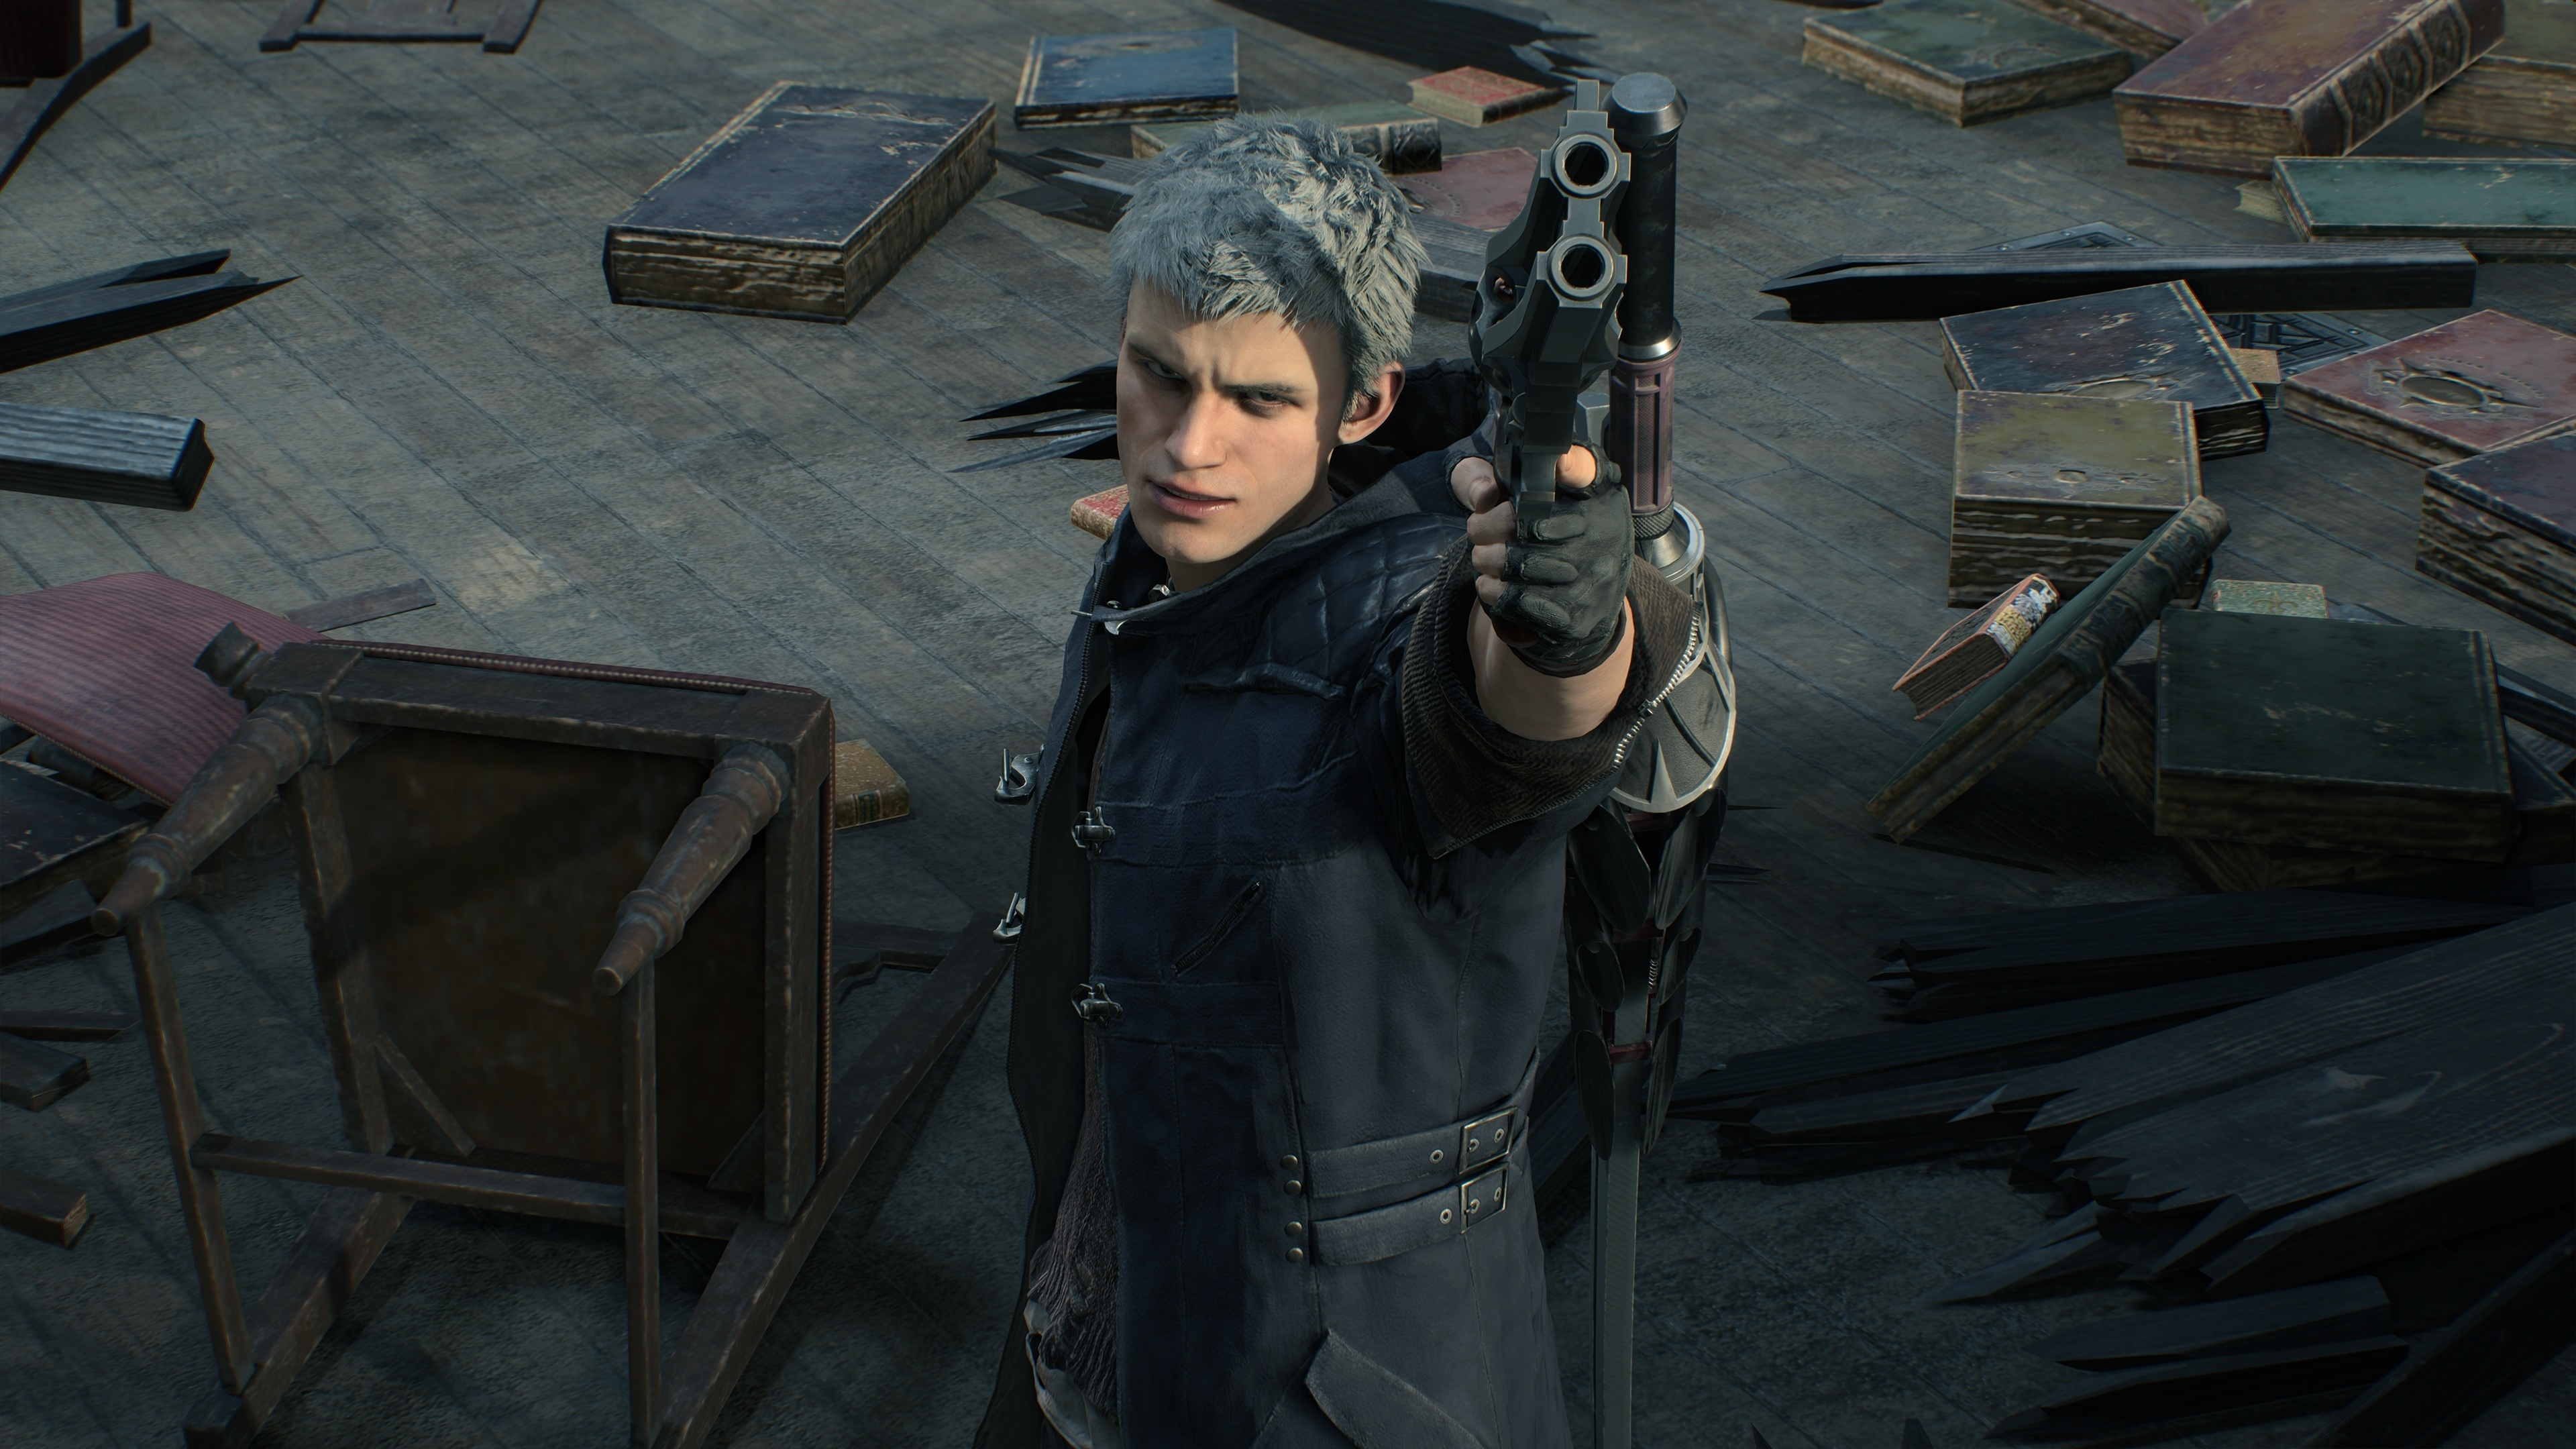 Download 3840x2400 Wallpaper Devil May Cry 5 Video Game